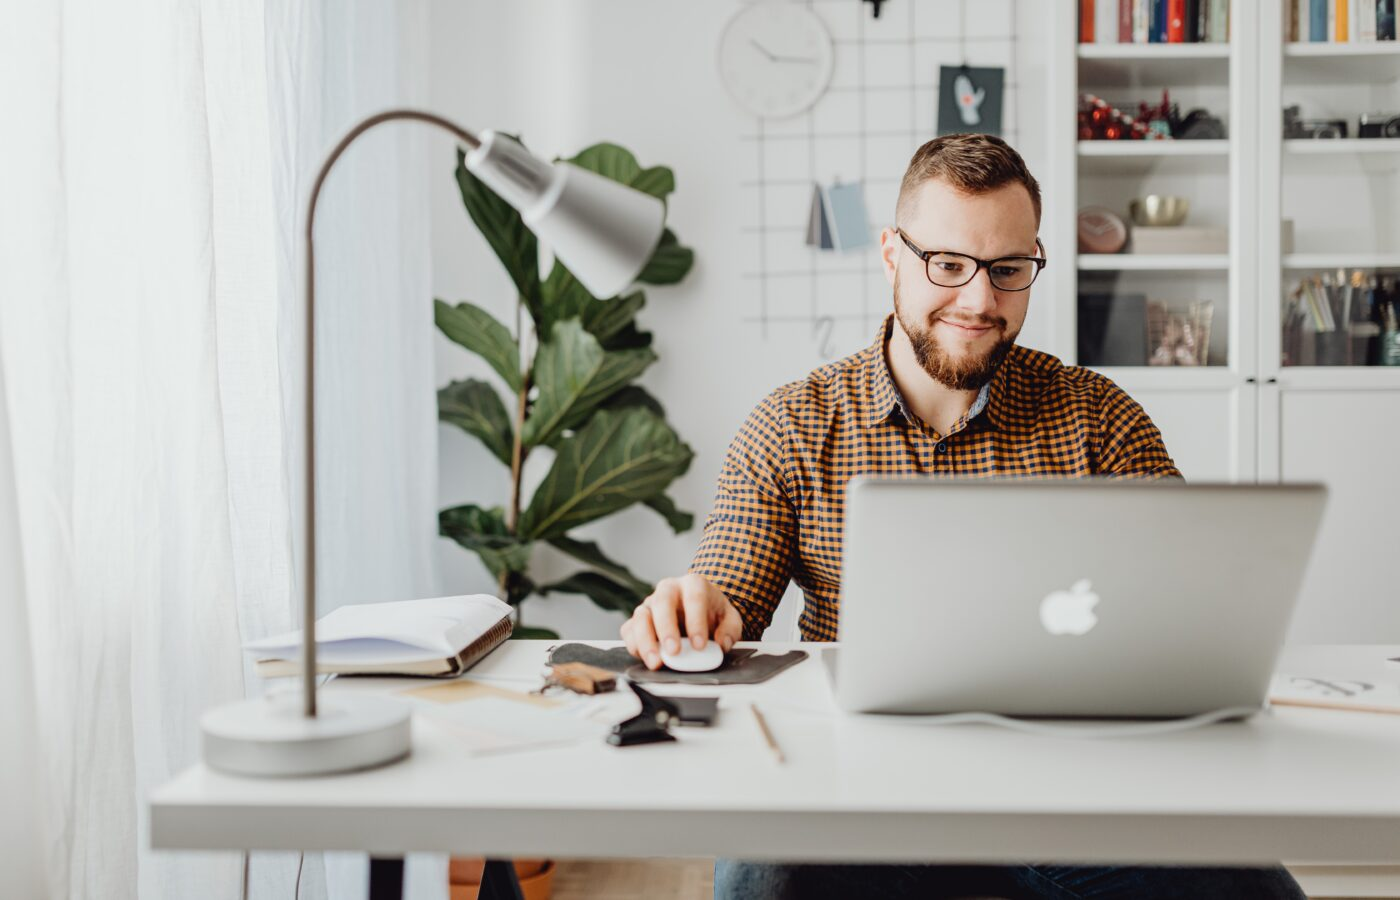 Best accounting software for e-commerce 2021 - man working on a laptop at a minimalist desk with a silver lamp and a green plant and bookcase in the background